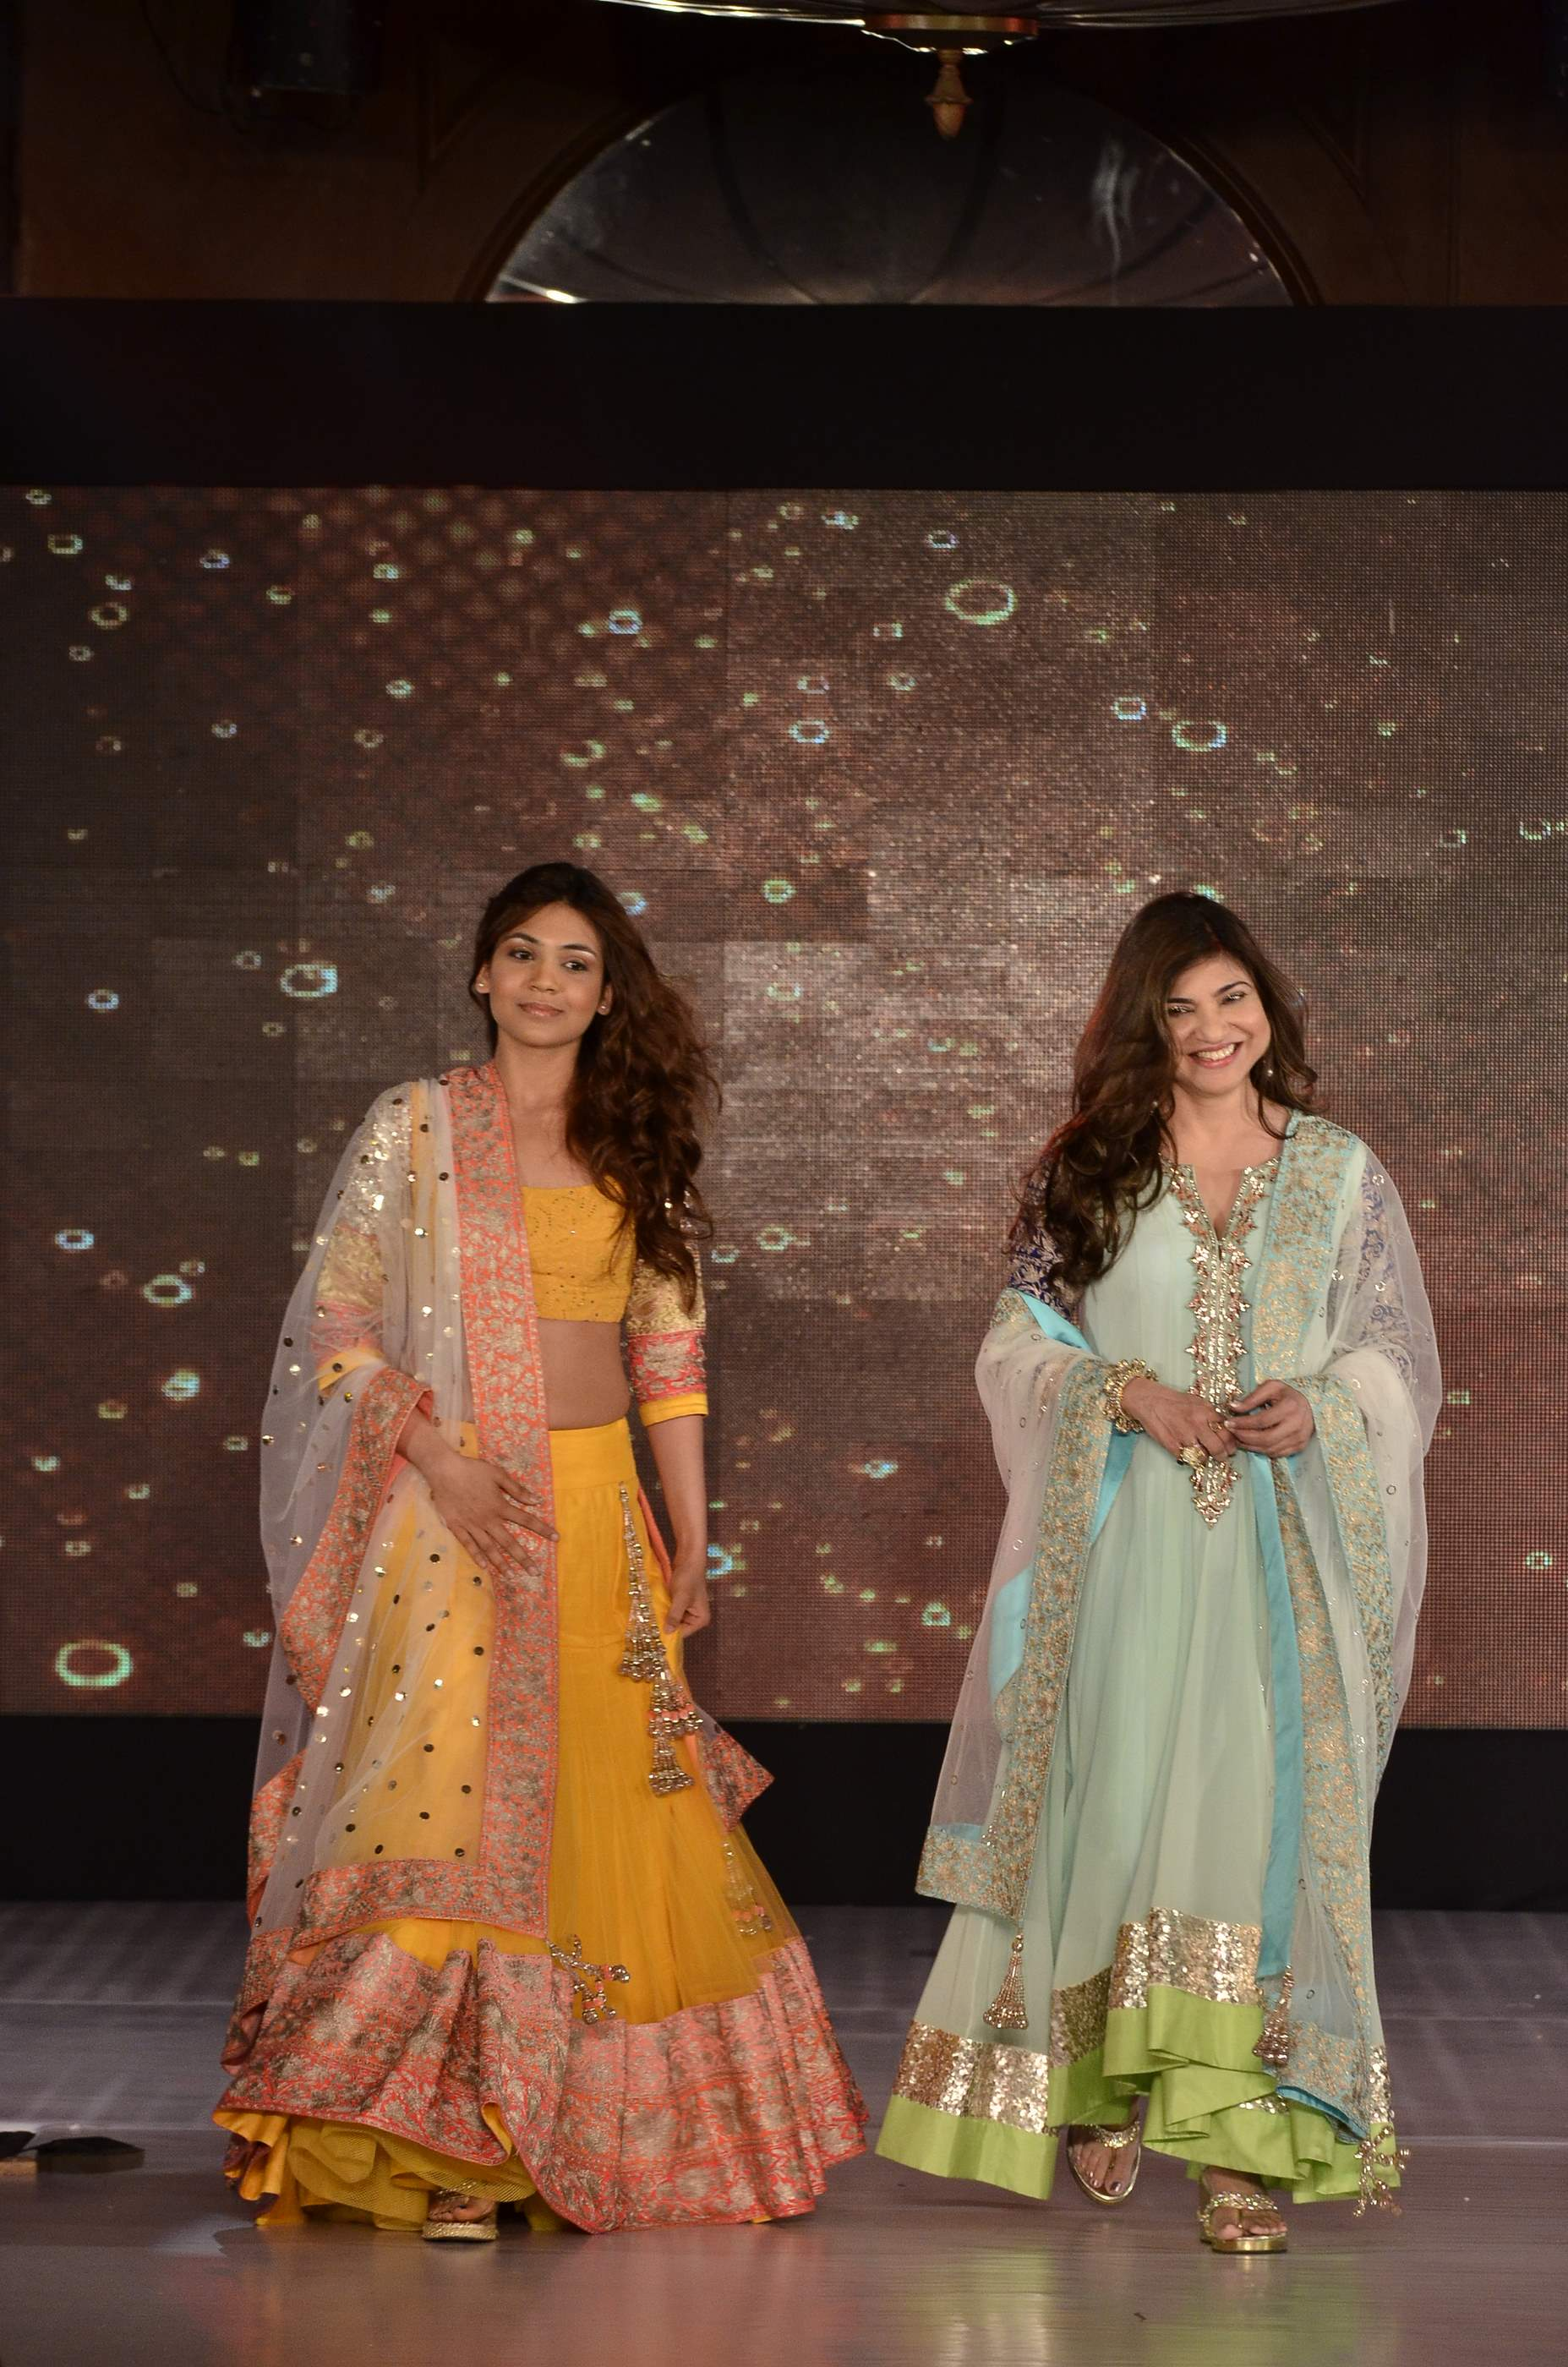 for    Save the Girl Child    initiative   187  alka yagnik with daughterAlka Yagnik Daughter Photos